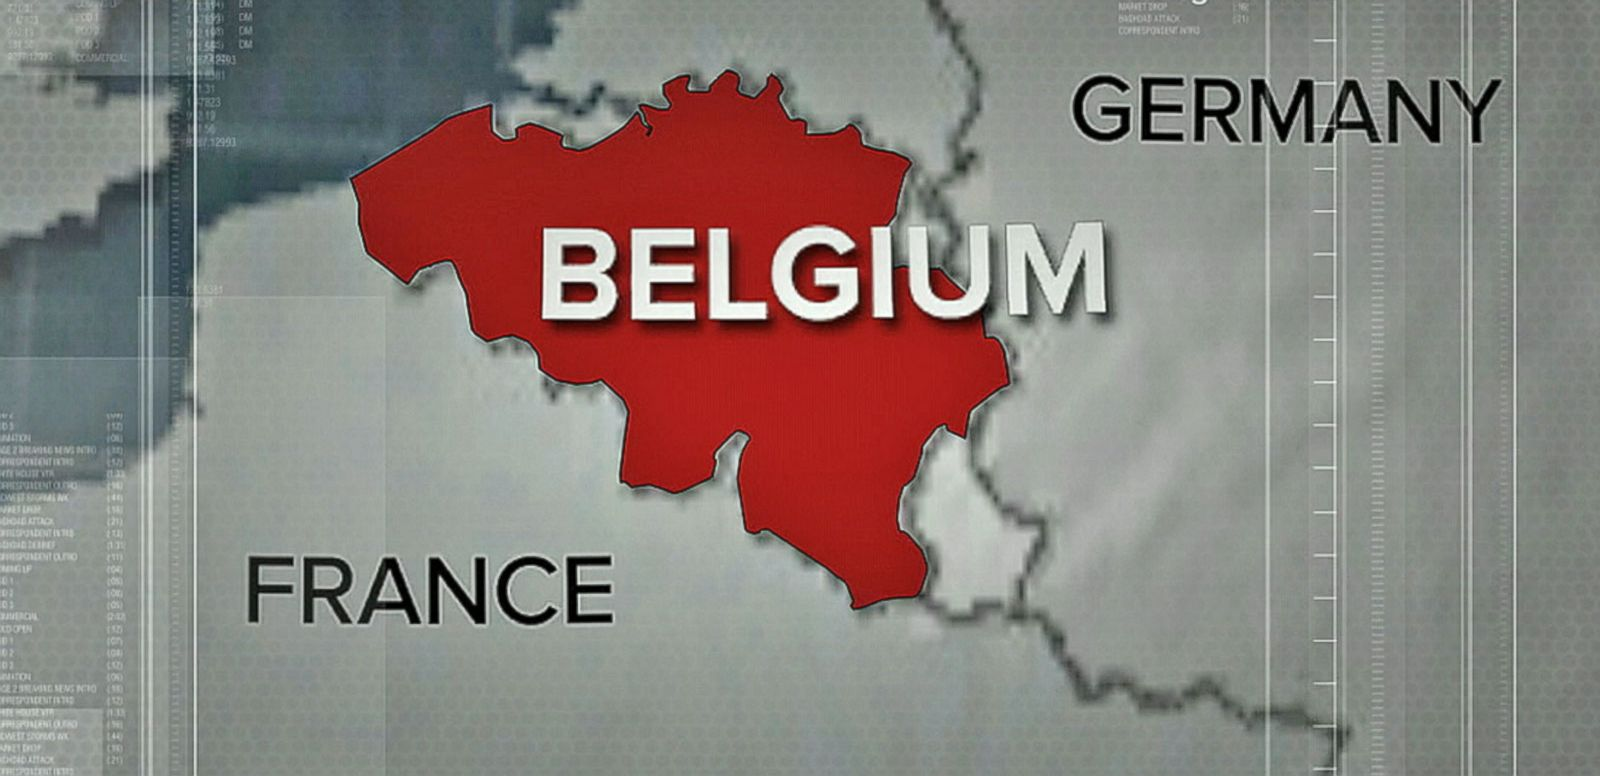 VIDEO: Belgian Prosecutors Confirm Arrests of 2 Brothers Suspected in Terror Plot